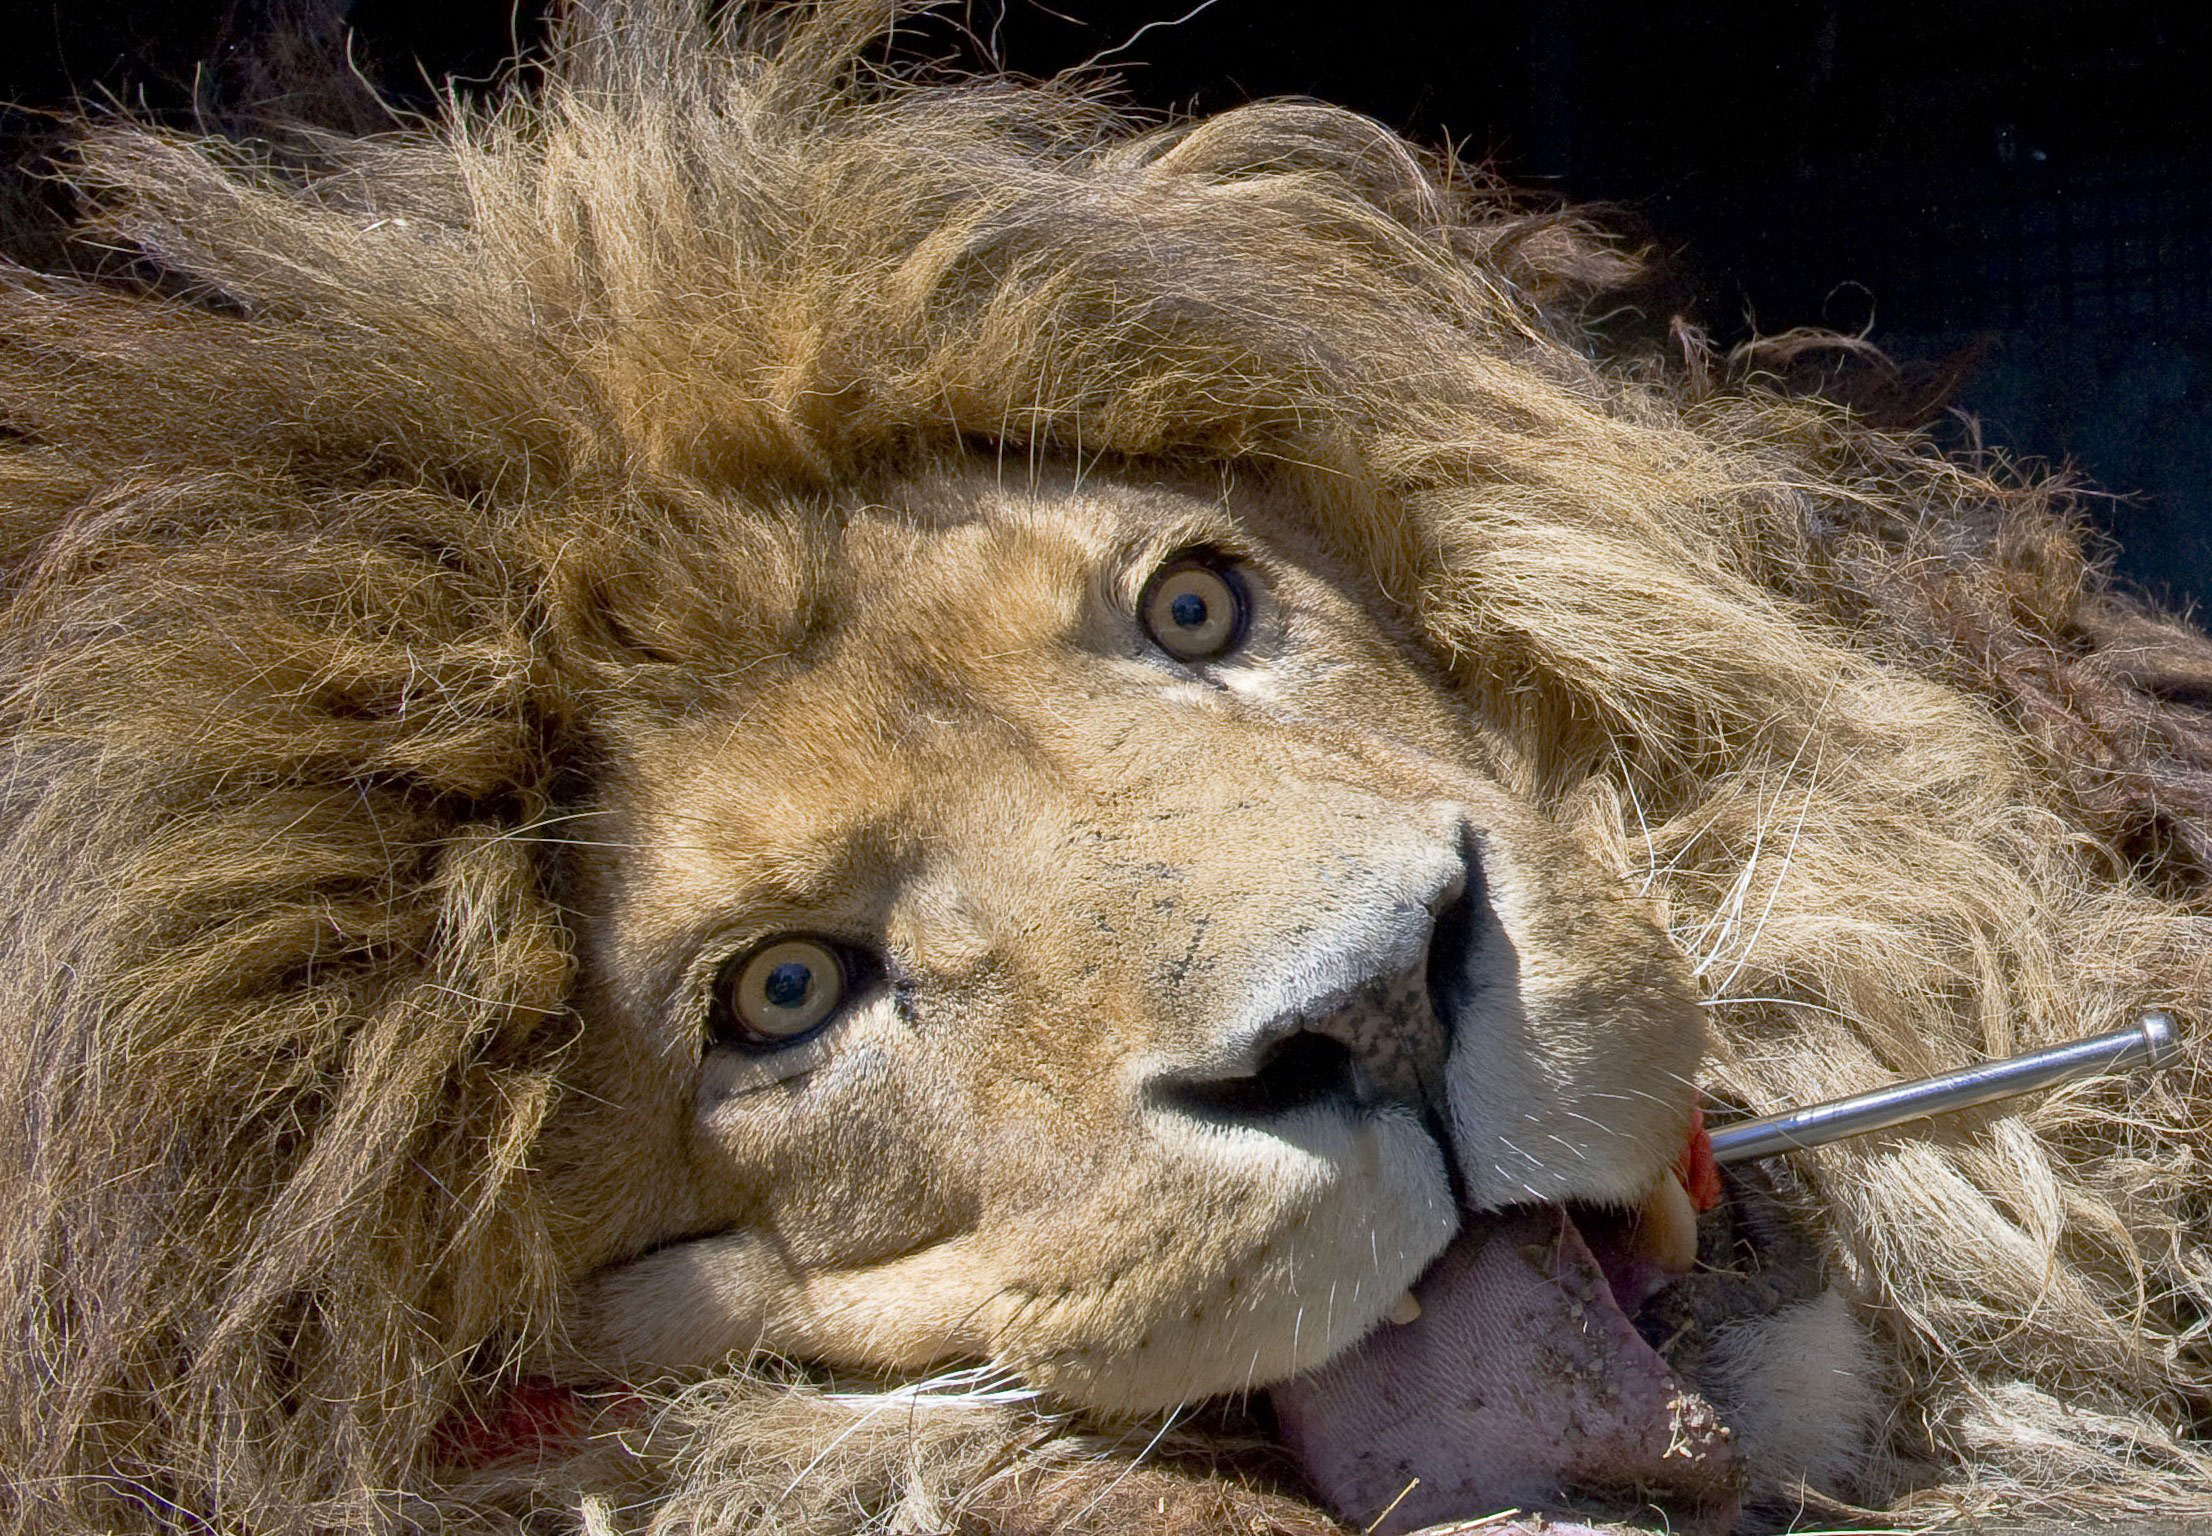 A lion, which was anesthetized, lies in a truck in Champetieres, France, during the evacuation of over 160 animals from the Bouy zoo. The zoo is in compulsory liquidation and its owner was jailed for international trafficking of protected species by an organized gang. April 9, 2015.